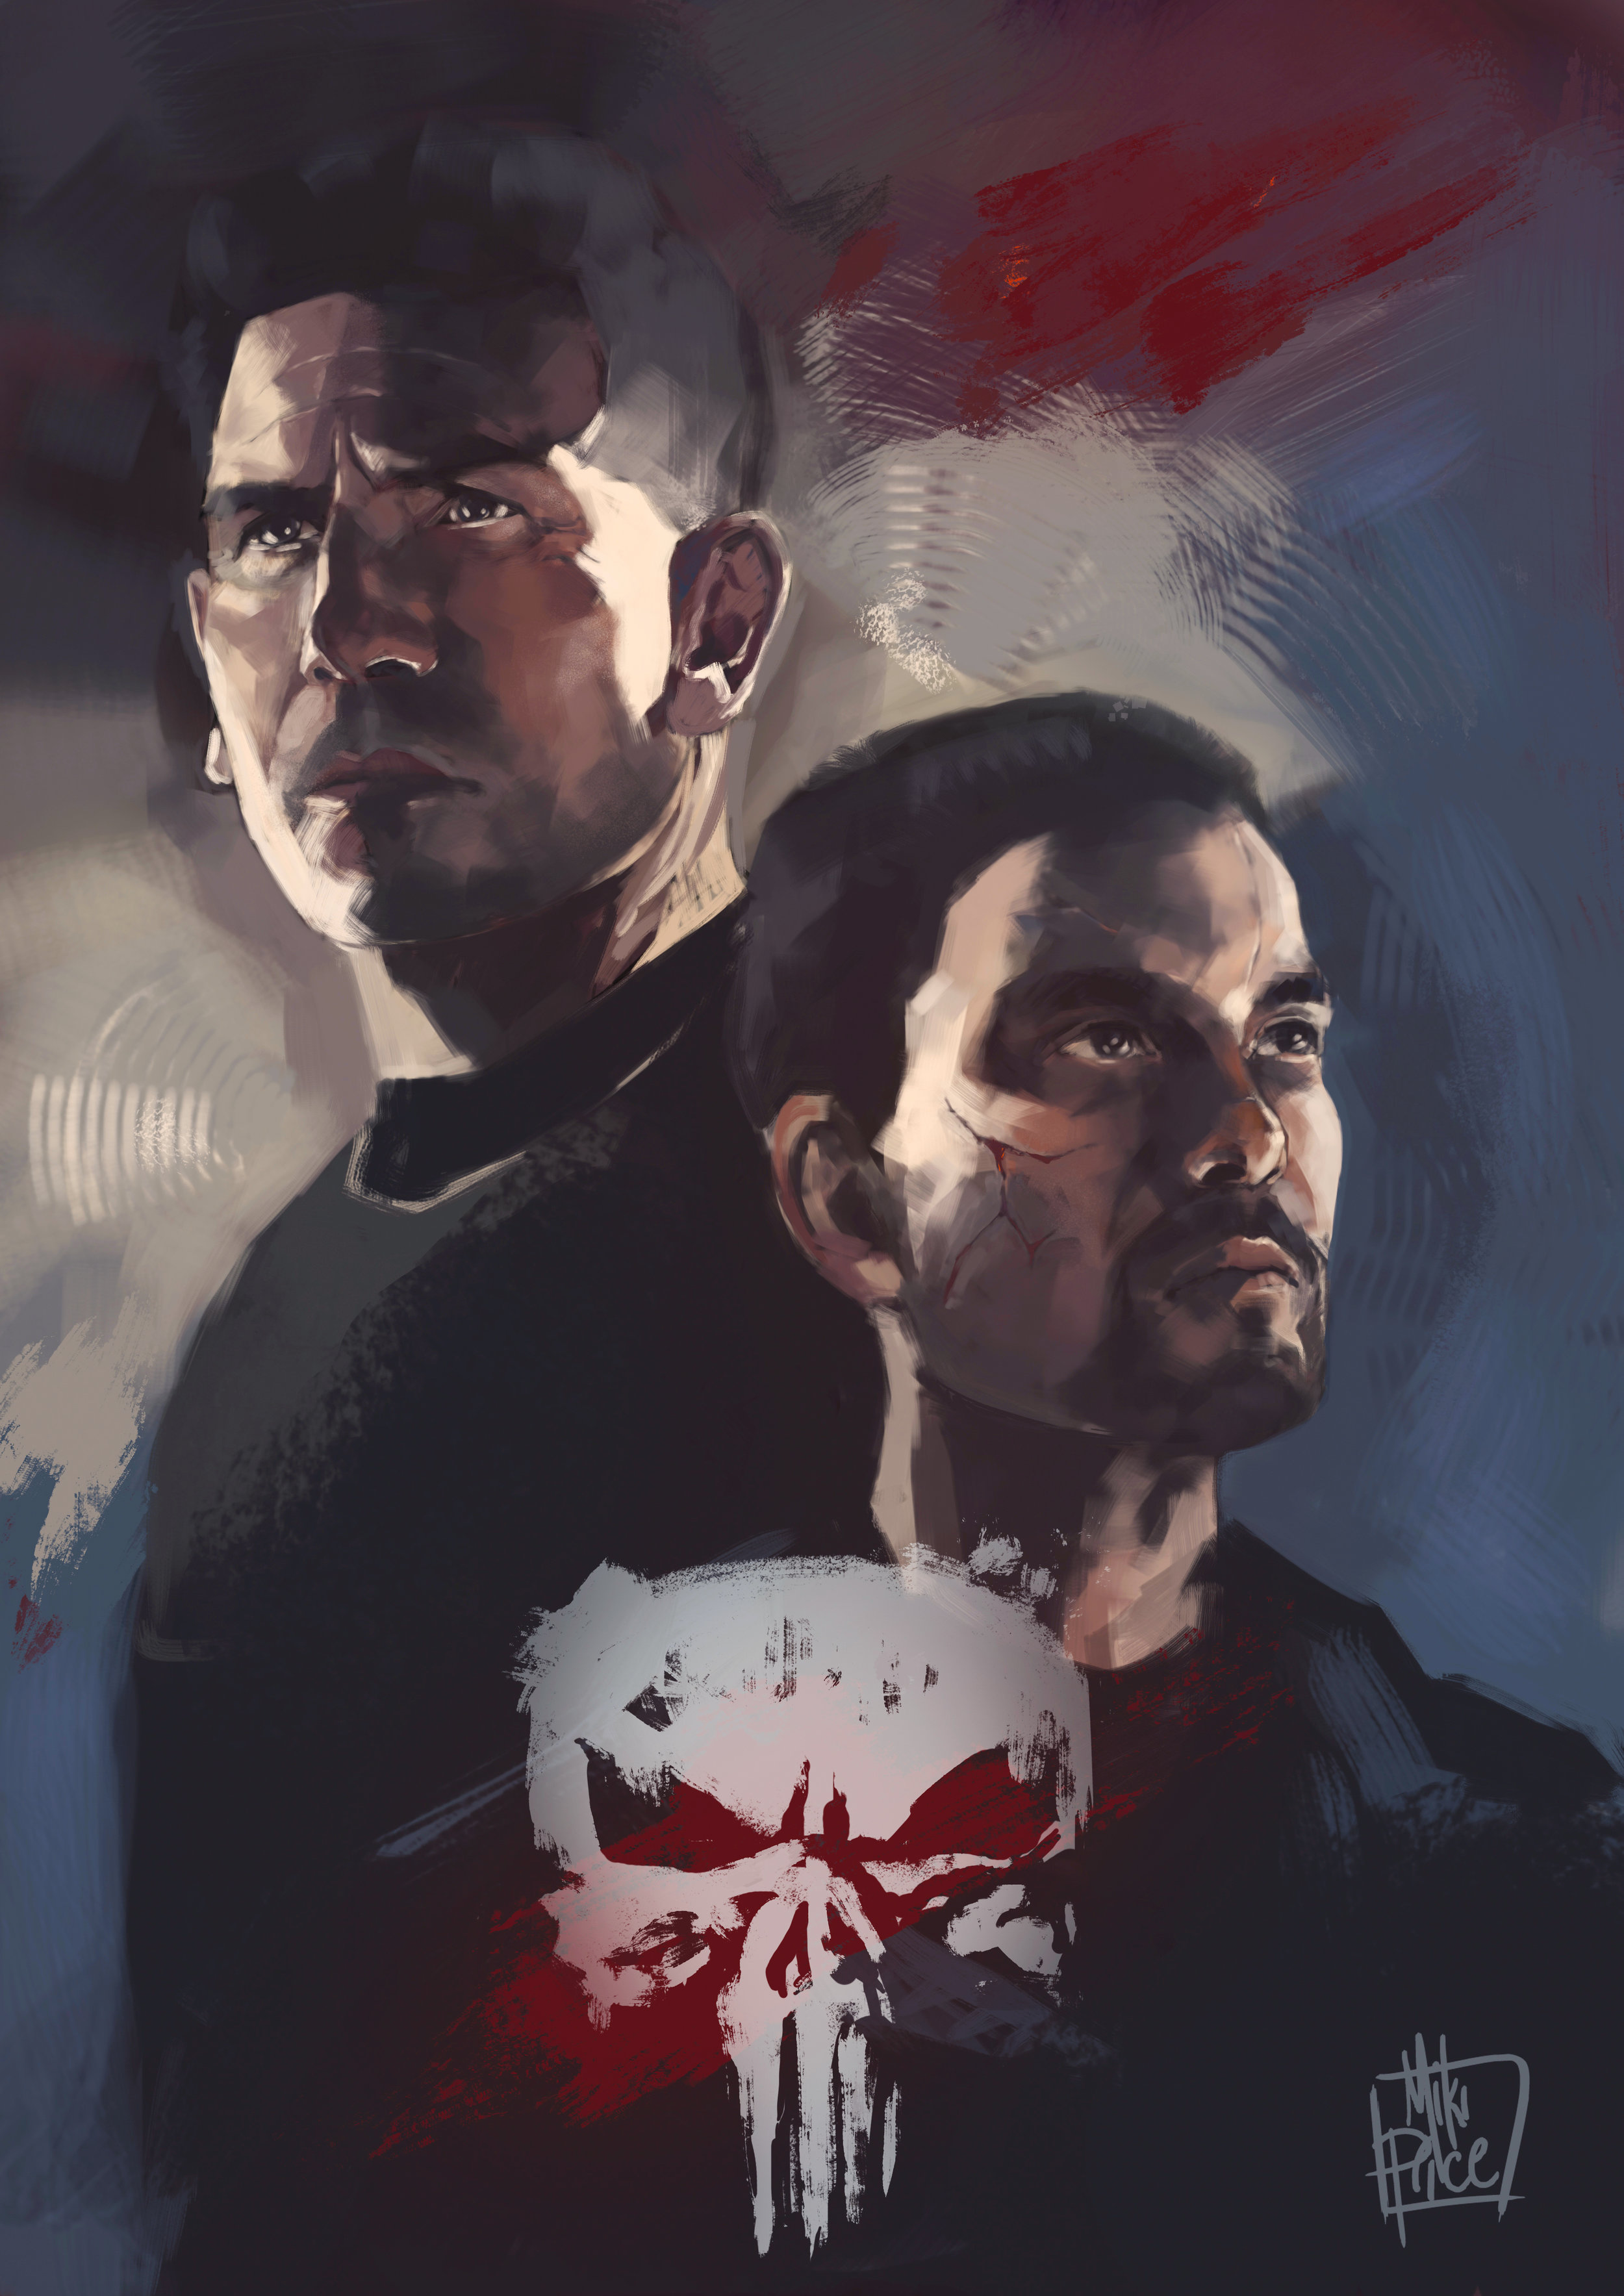 Punisher_Print.jpg